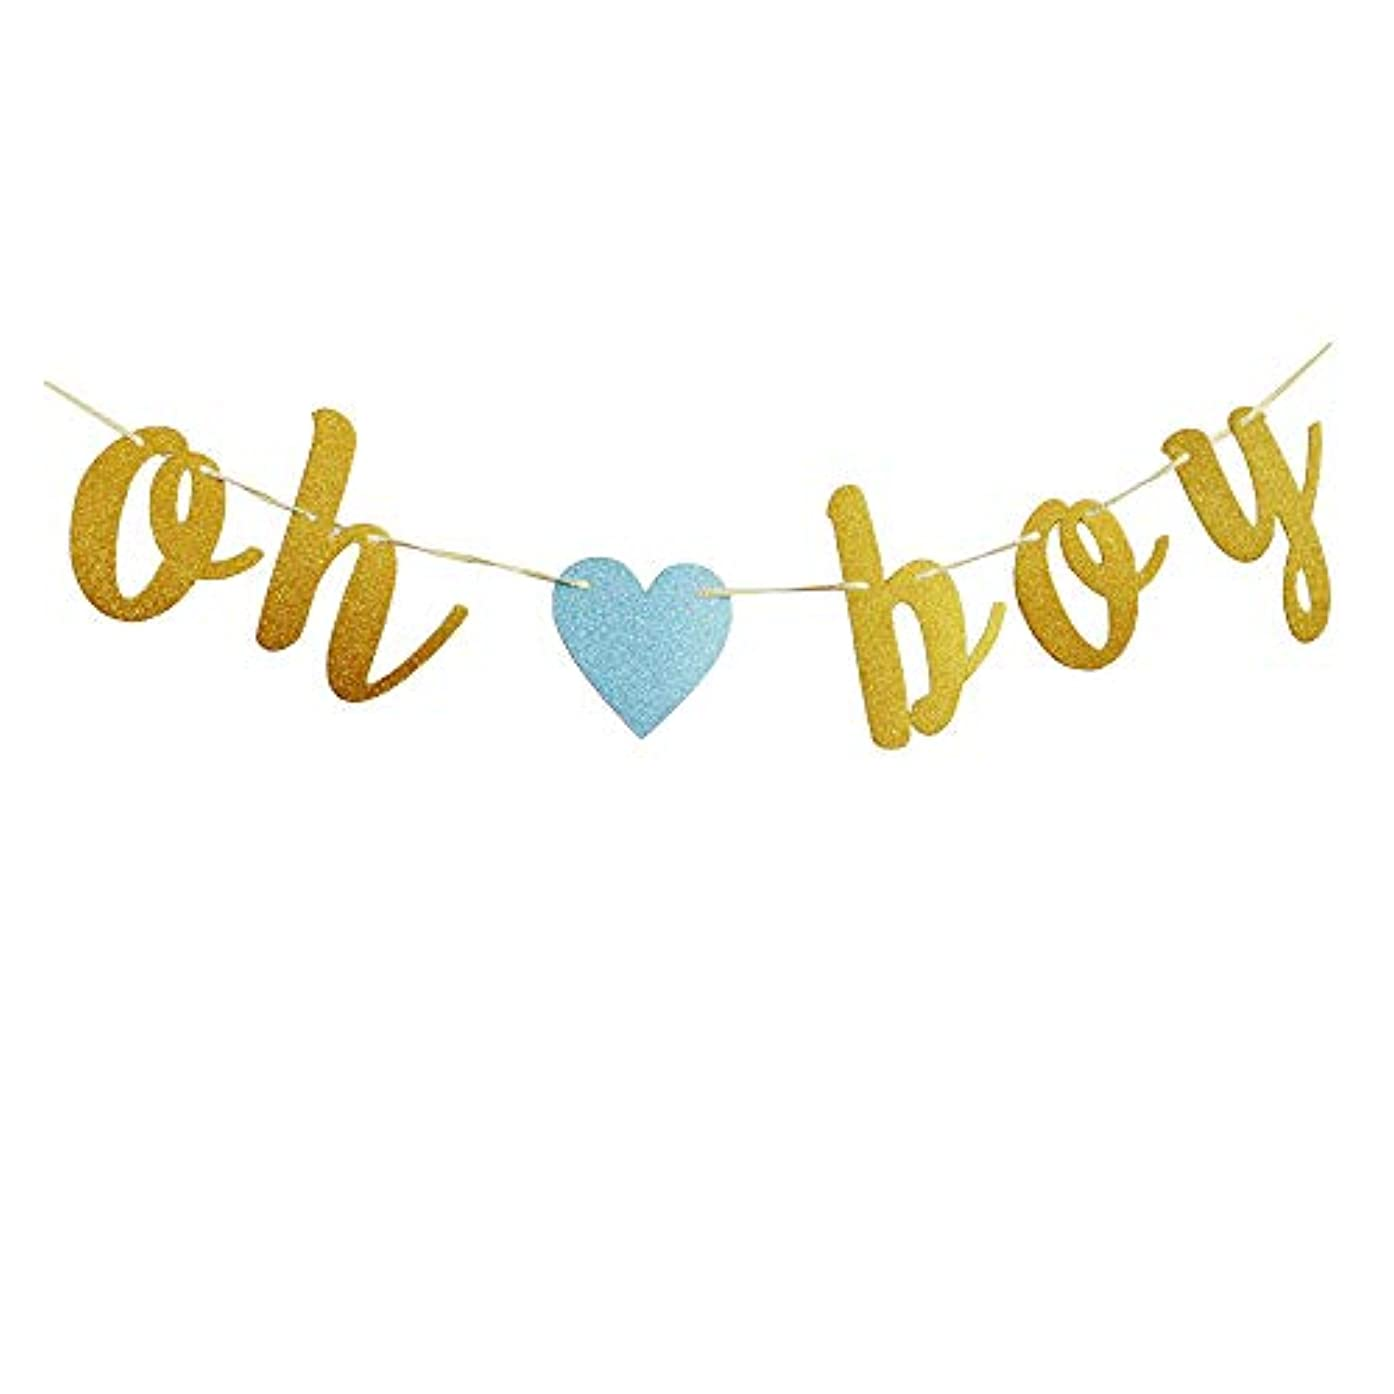 Oh Boy with Blue Heart Banner, Funny Paper Garland for Gender Reveal Baby Shower Party Decorations